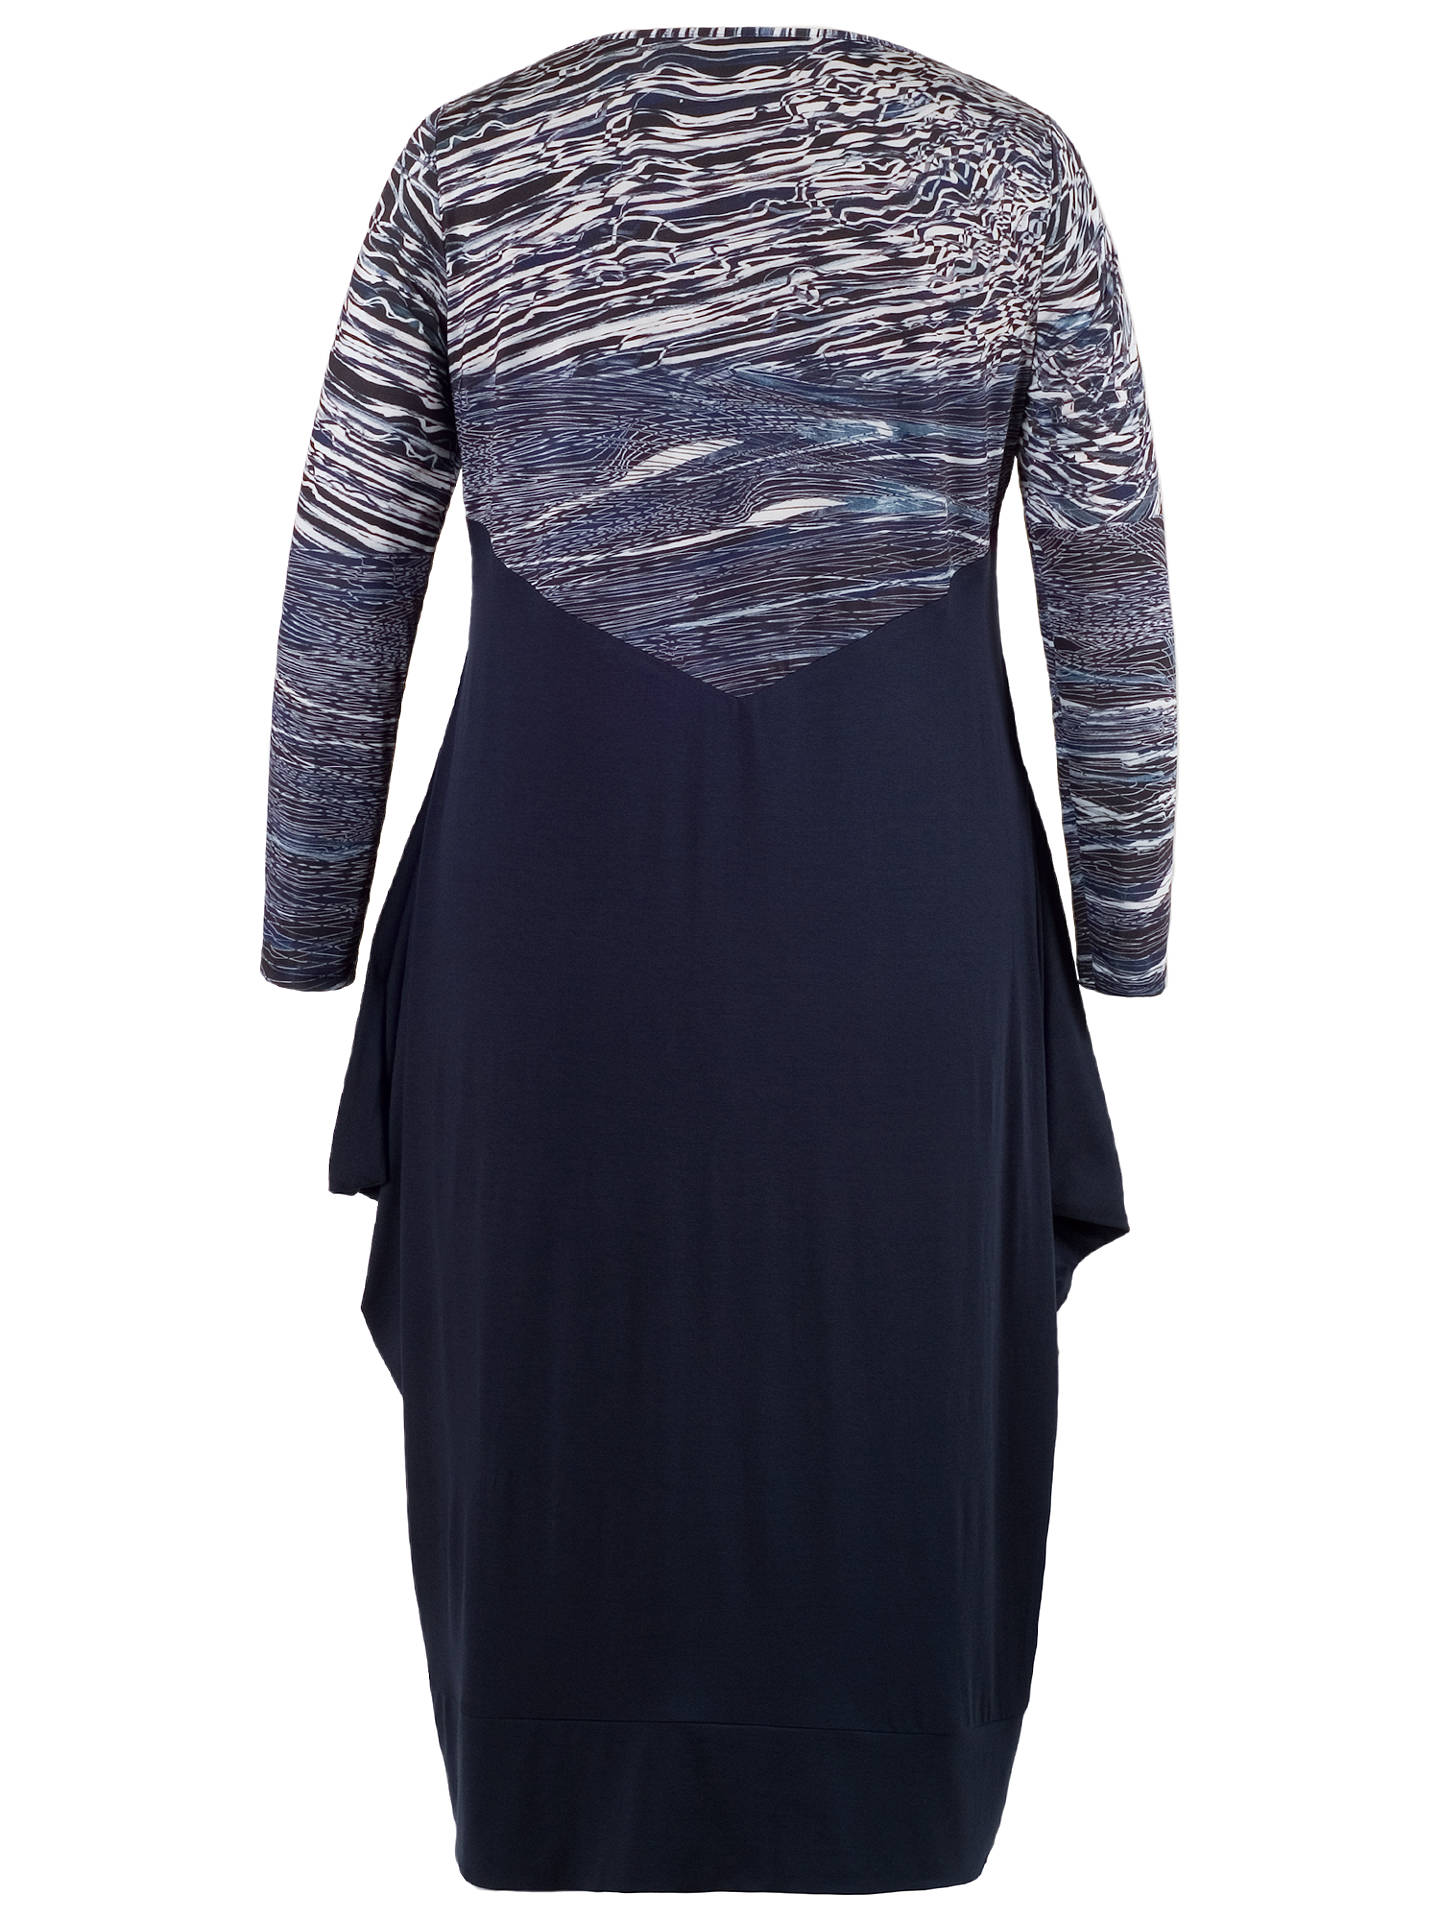 Buy Chesca Ribbon Print Bodice Dress, Navy, 12-14 Online at johnlewis.com